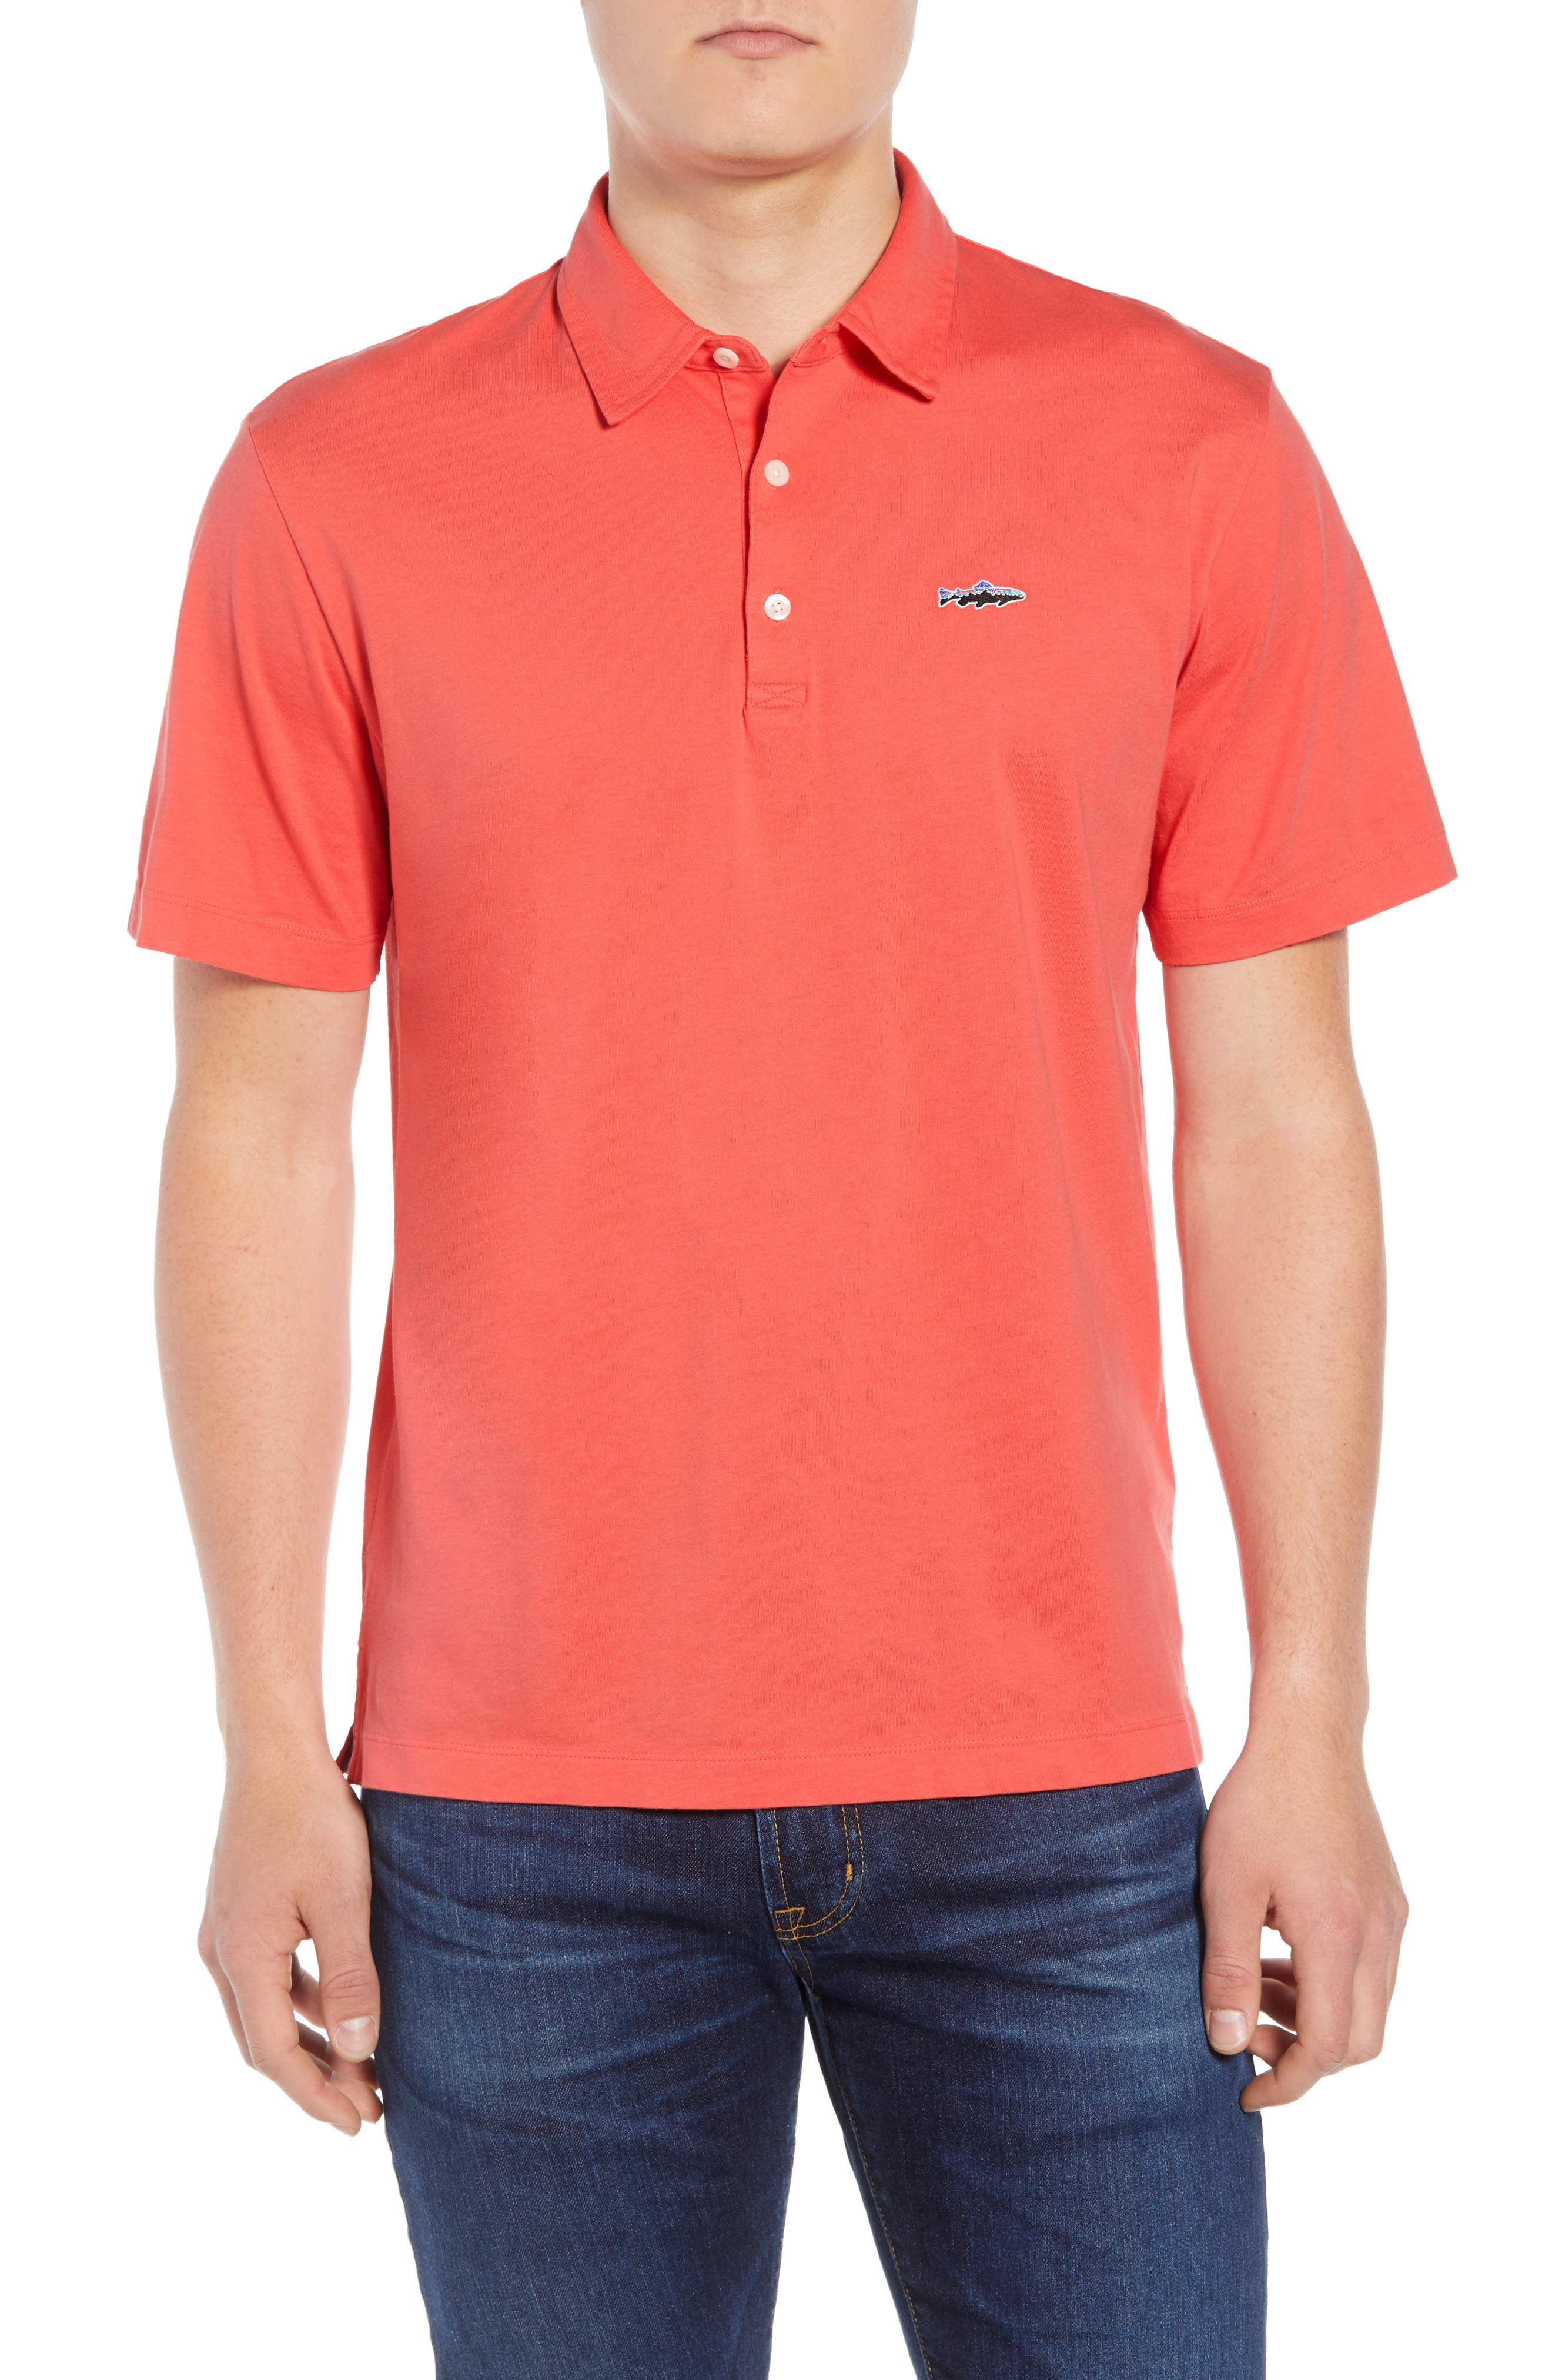 'Trout Fitz Roy' Organic Cotton Polo,                         Main,                         color, SPICED CORAL